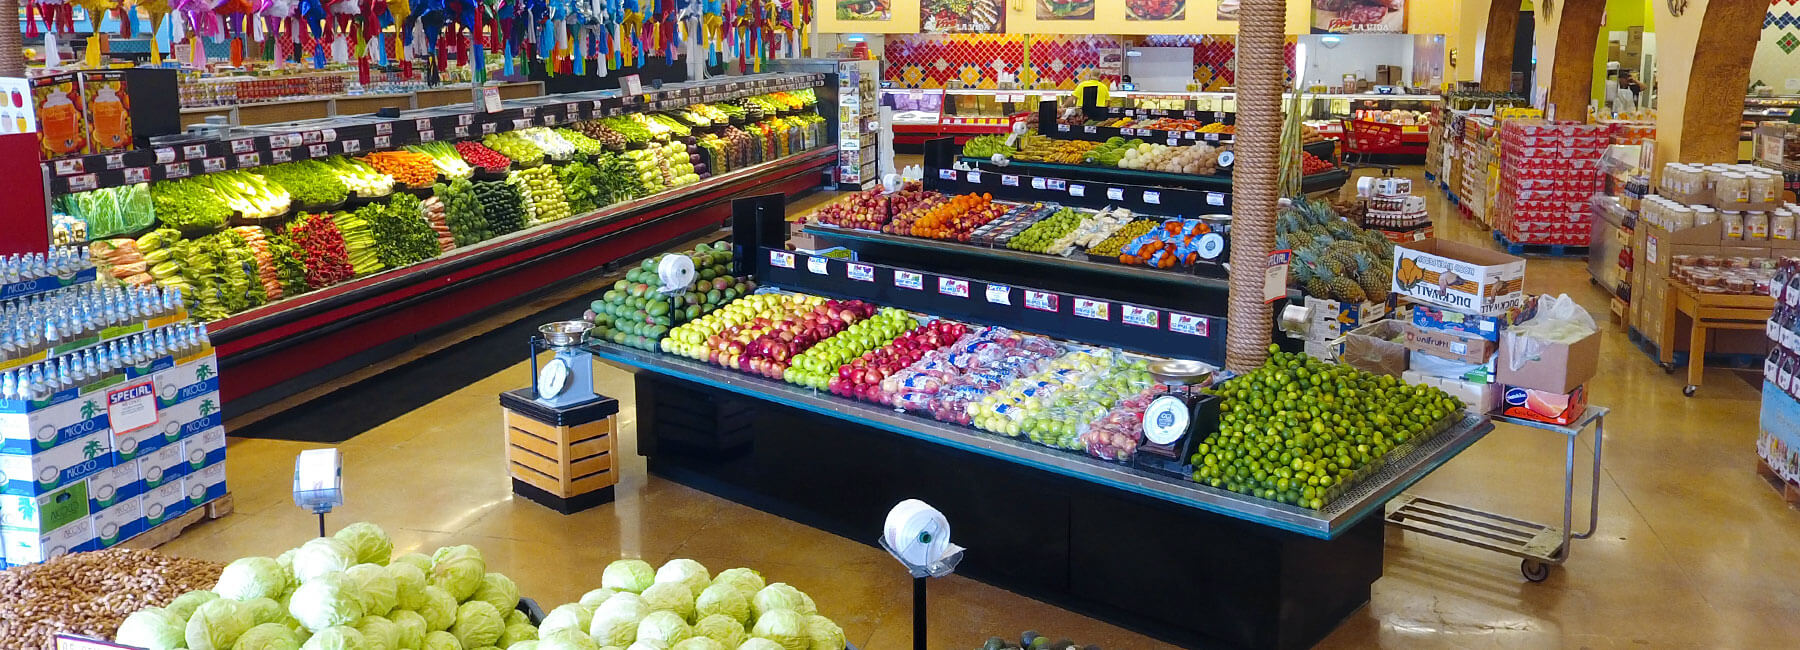 How to get rid of Supermarket Pests